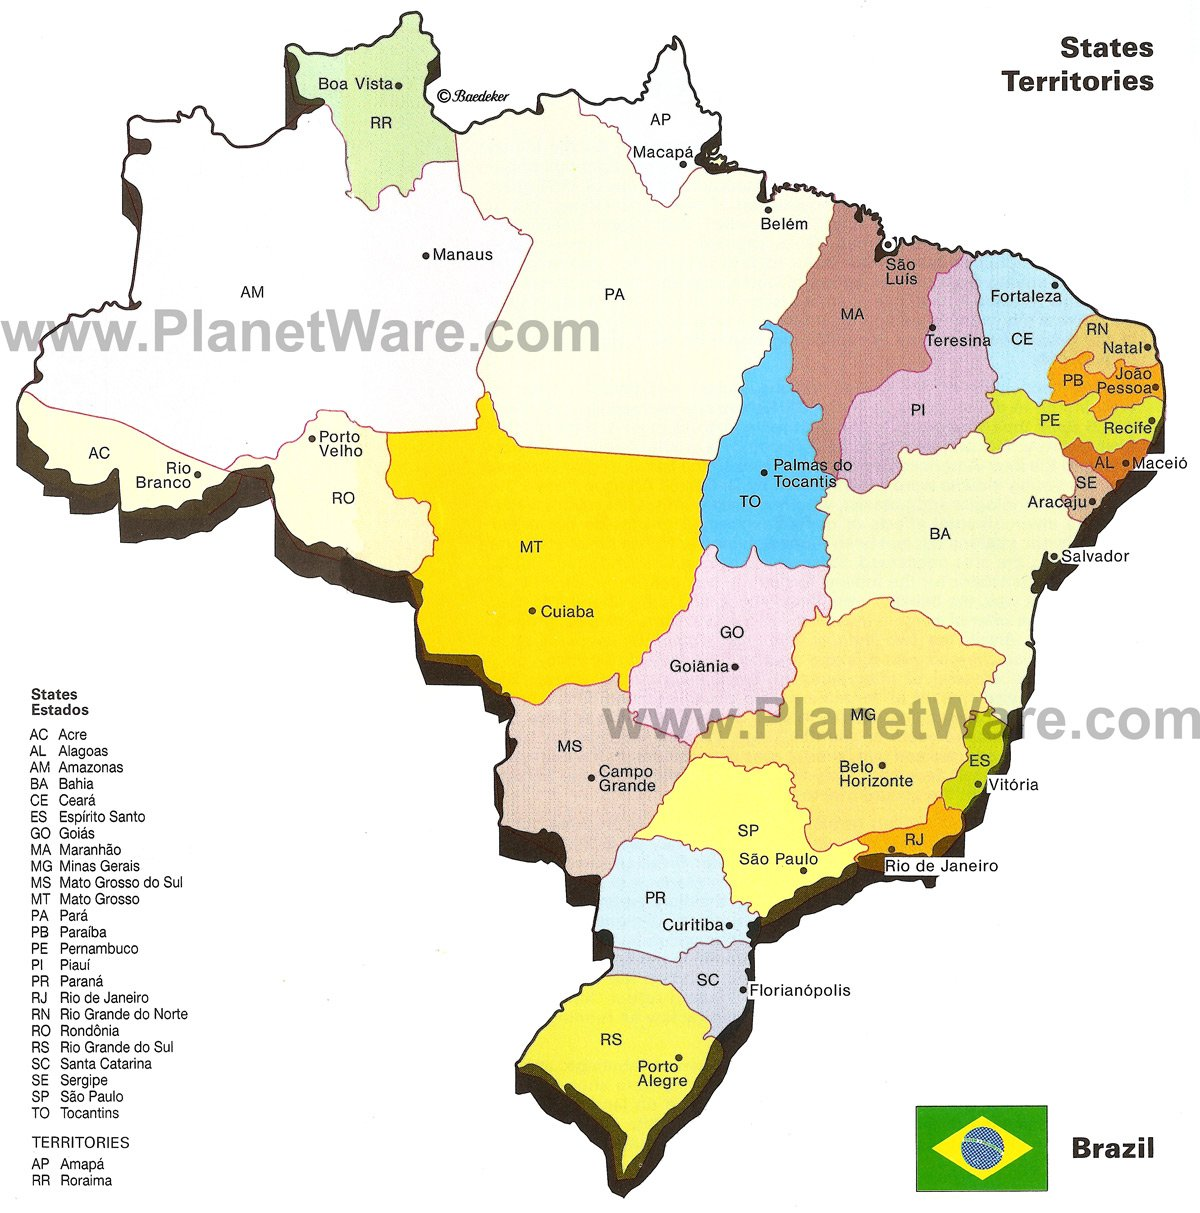 Brazil States Map Map of Brazil States & Major Citites | PlanetWare